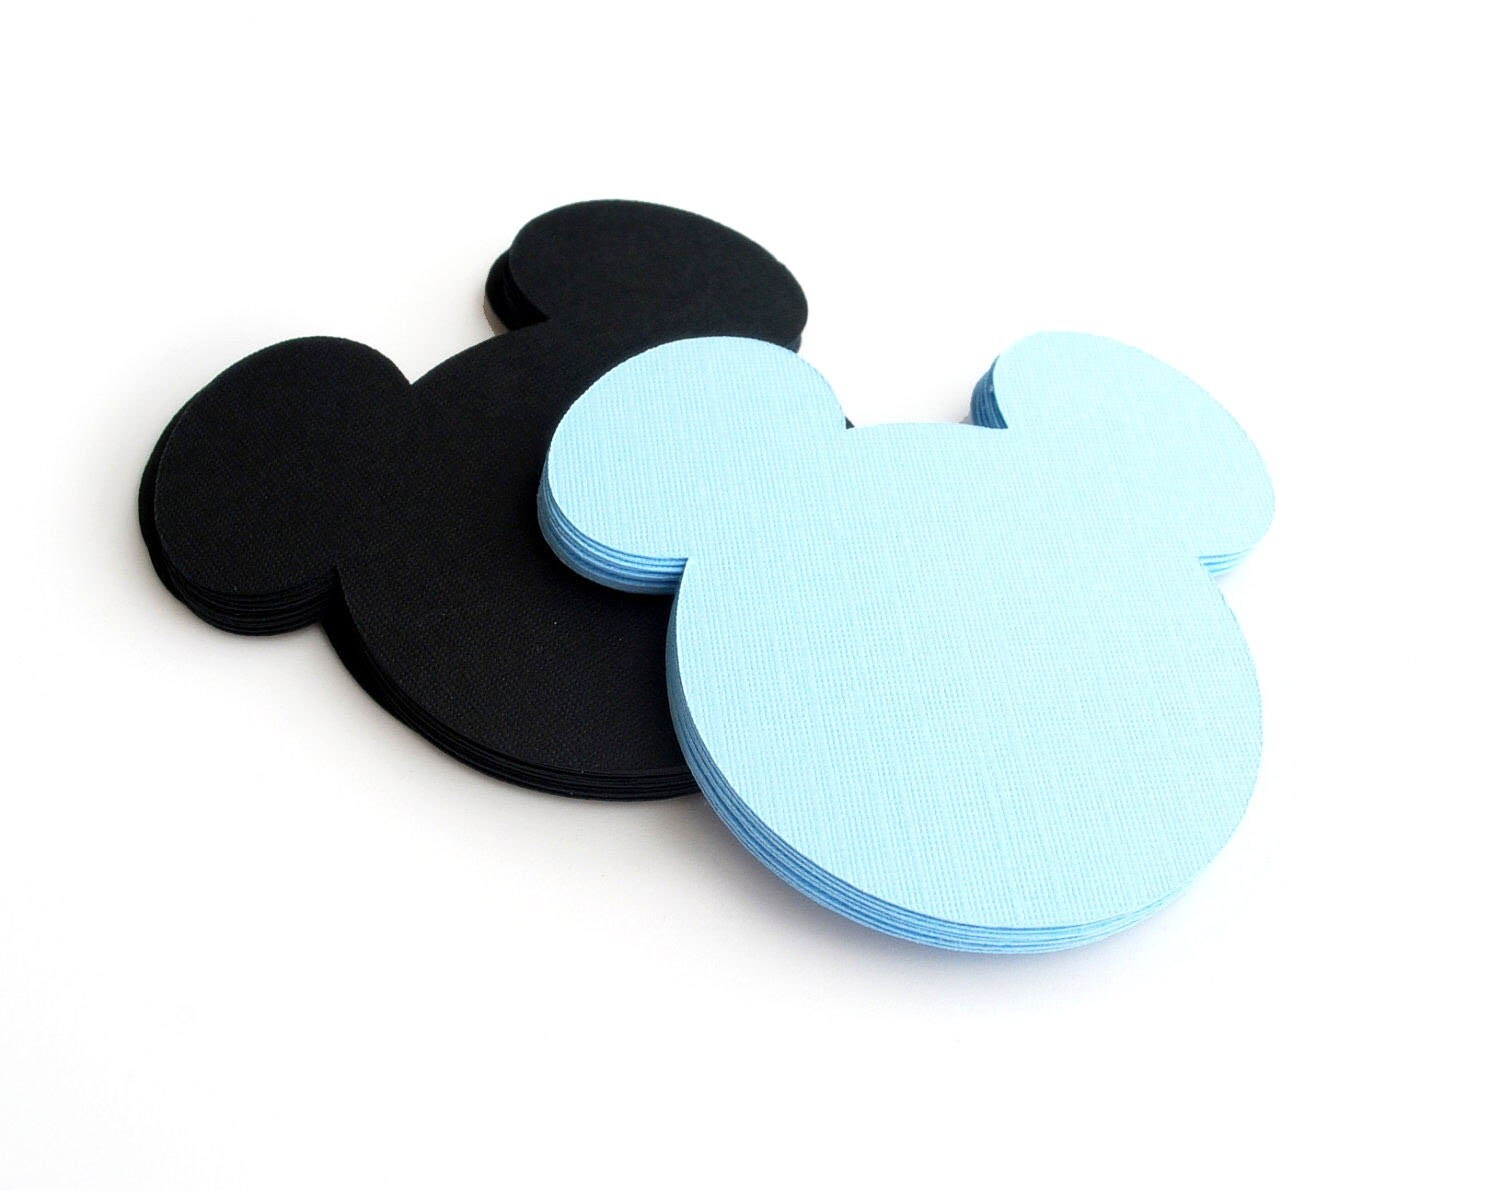 18 Mickey Mouse die cut (4 x3.75 inches) Choose up to 2 colors MariaPalito A179